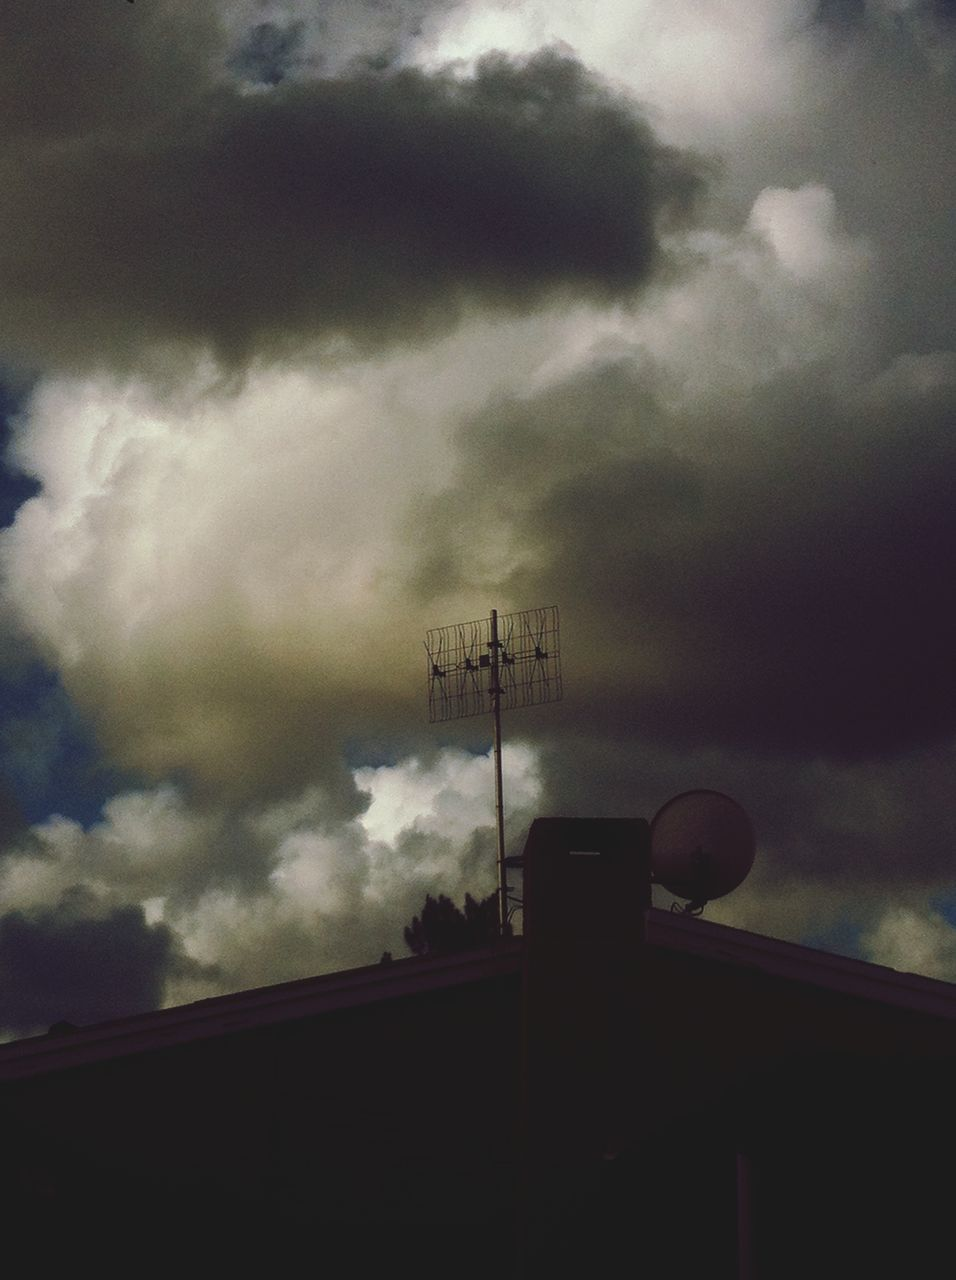 cloud - sky, sky, low angle view, communication, no people, connection, silhouette, technology, outdoors, storm cloud, day, architecture, nature, television aerial